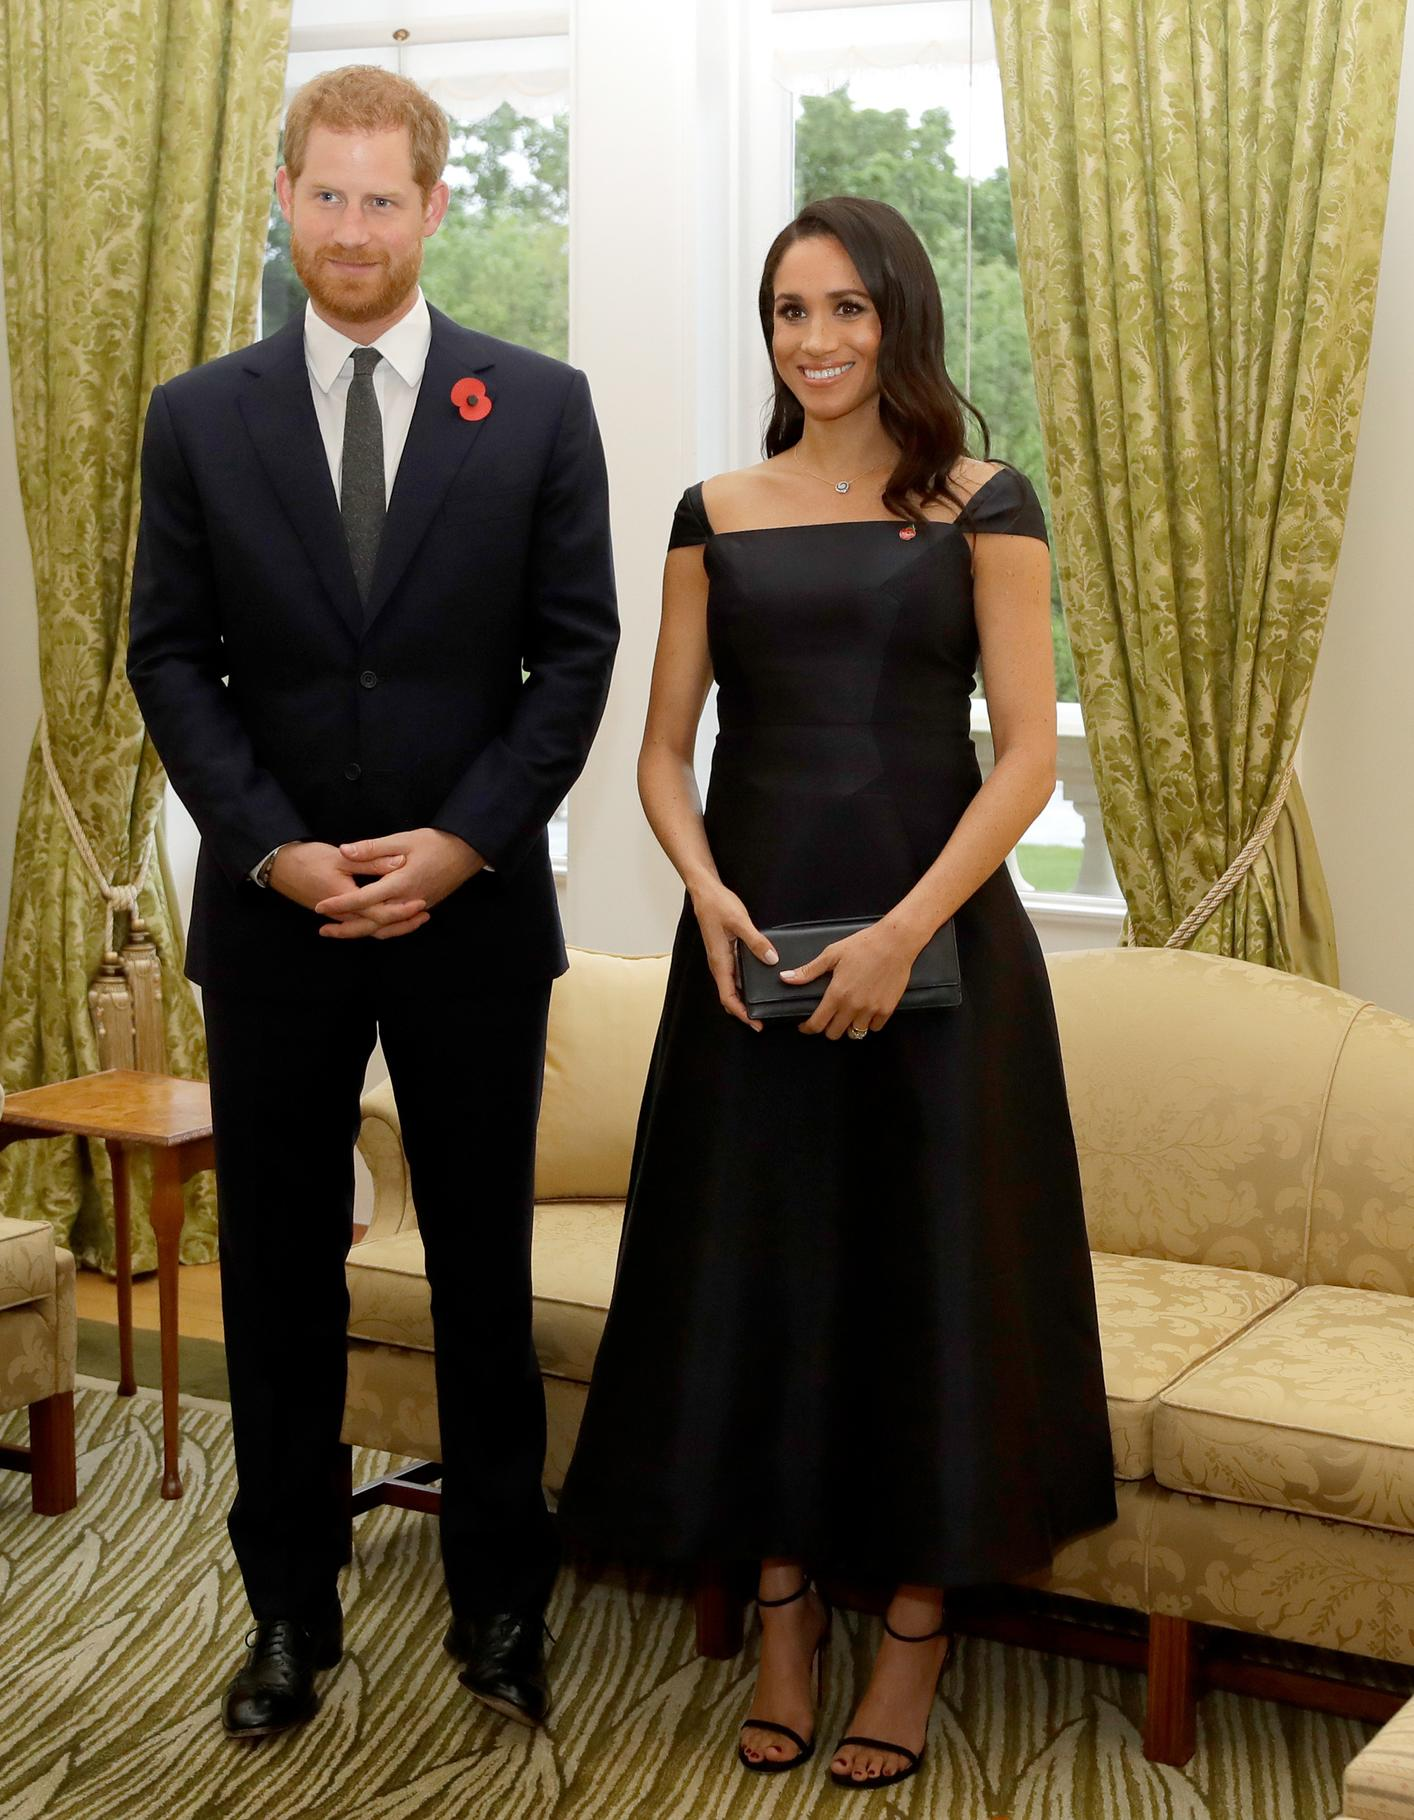 """The Duchess of Sussex attended a reception at Government House on October 28, 2018 in Wellington, New Zealand, alongside Prince Harry in a black Gabriela Hearst dress and <a href=""""https://www.google.com/search?q=stuart+weitzman&oq=stuart+we&aqs=chrome.0.0l2j69i61j69i57j0l2.2432j0j7&sourceid=chrome&ie=UTF-8"""">Stuart Weitzman</a> heels."""